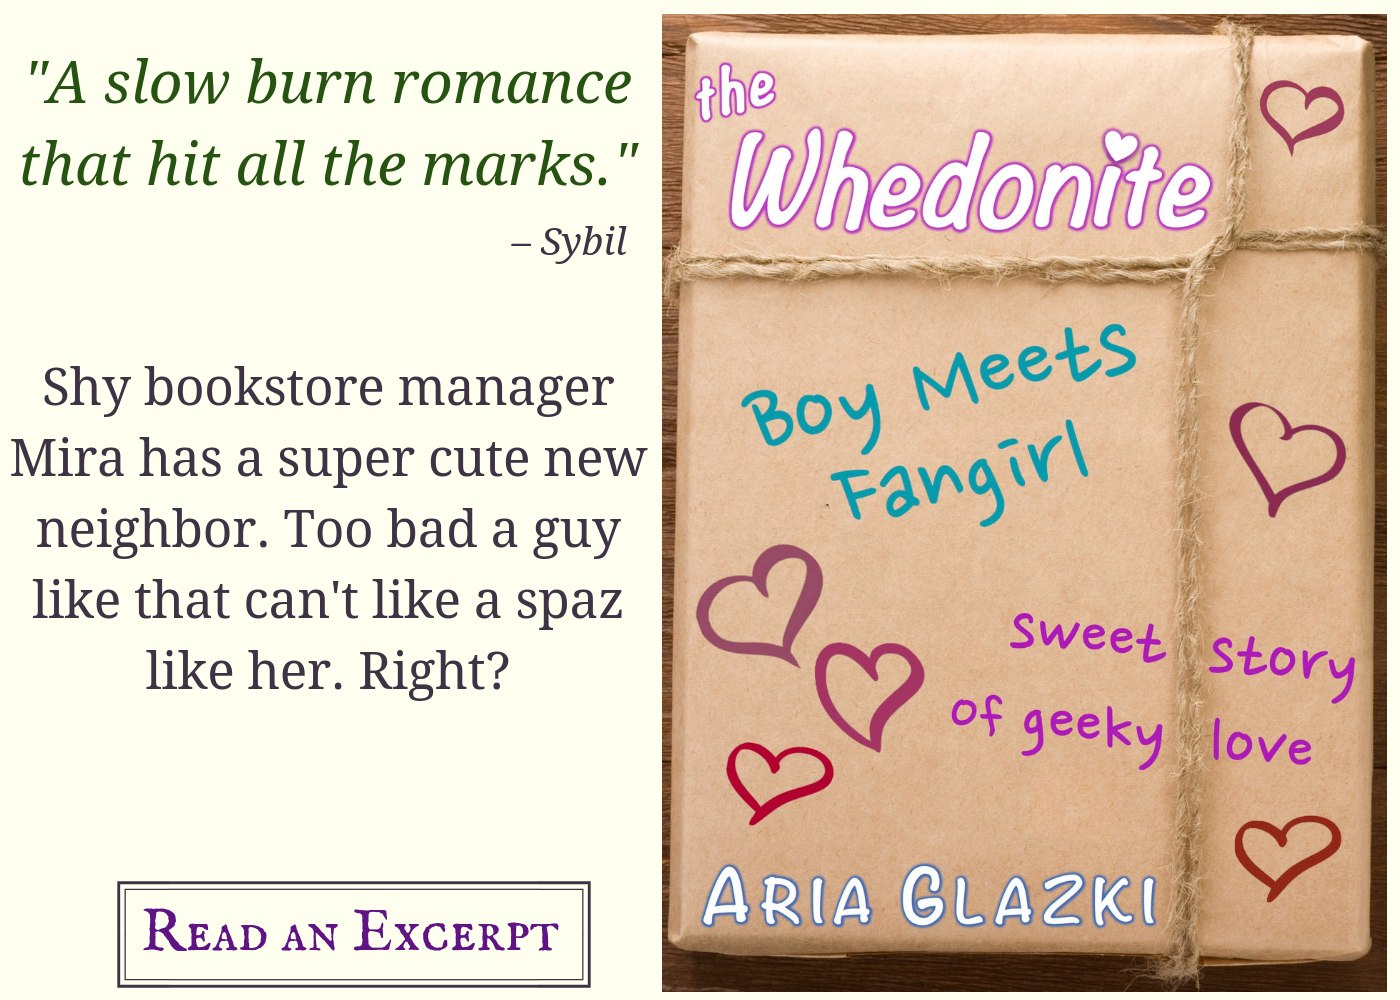 "Image card for The Whedonite by Aria Glazki, featuring book cover and text: ""A slow burn romance that hit all the marks."" —Sybil Shy bookstore manager Mira has a super cute new neighbor. Too bad a guy like that can't like a spaz like her. Right? Read an excerpt."